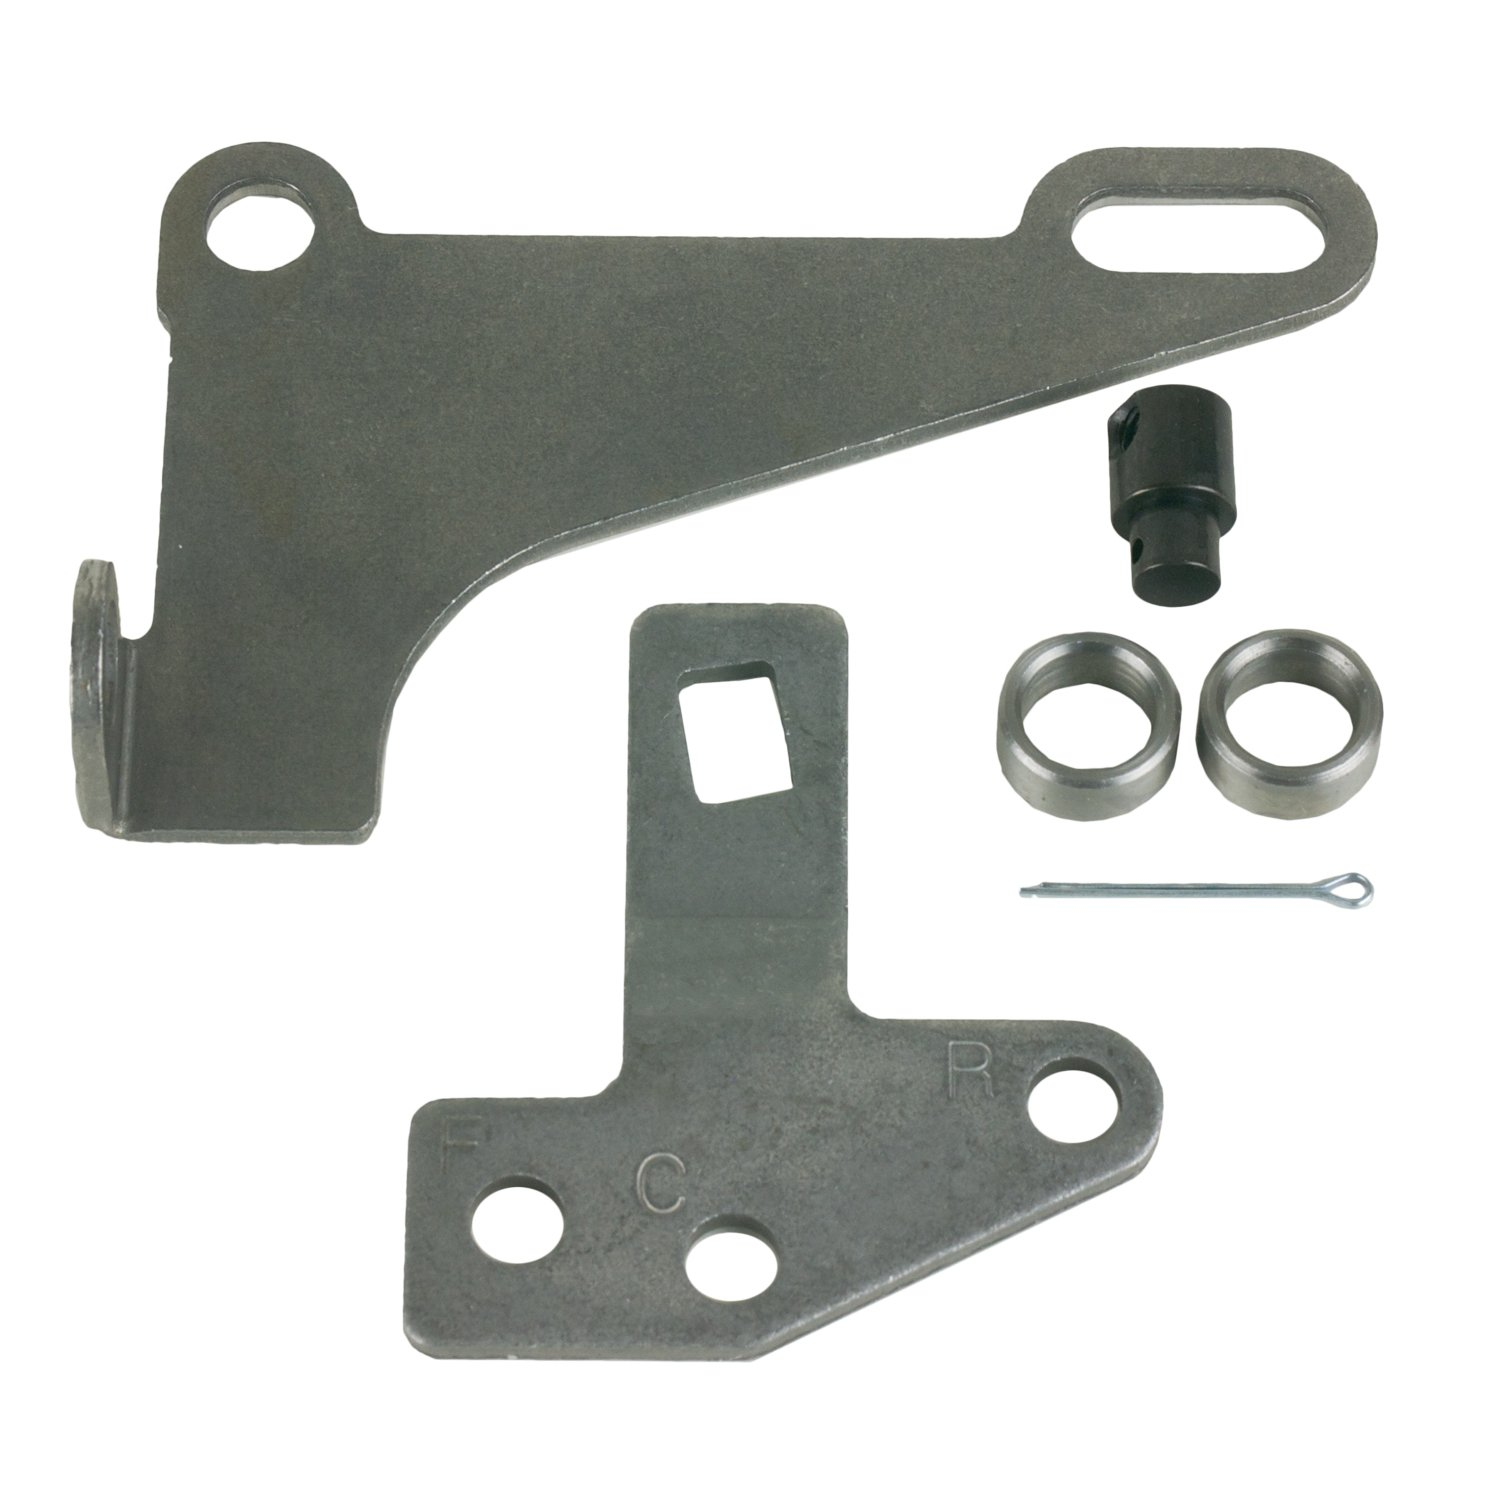 hight resolution of 75498 b m bracket and lever kit for 4l60e 4l80e image